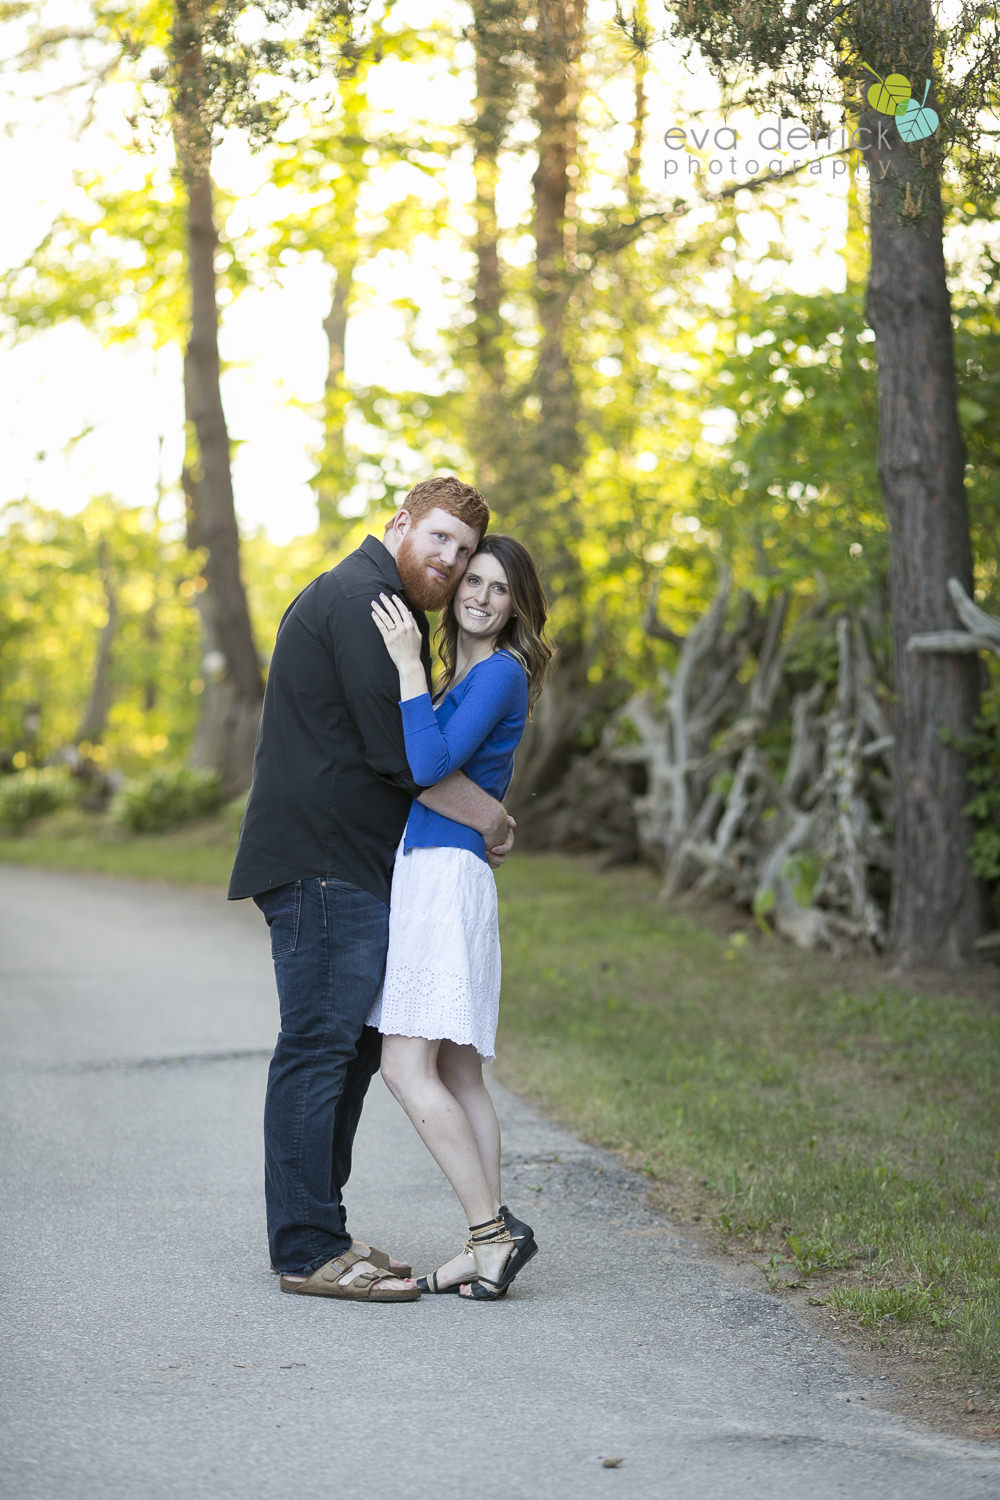 Millgrove-Photographer-Millgrove-Engagement-Session-photography-by-Eva-Derrick-Photography-009.JPG